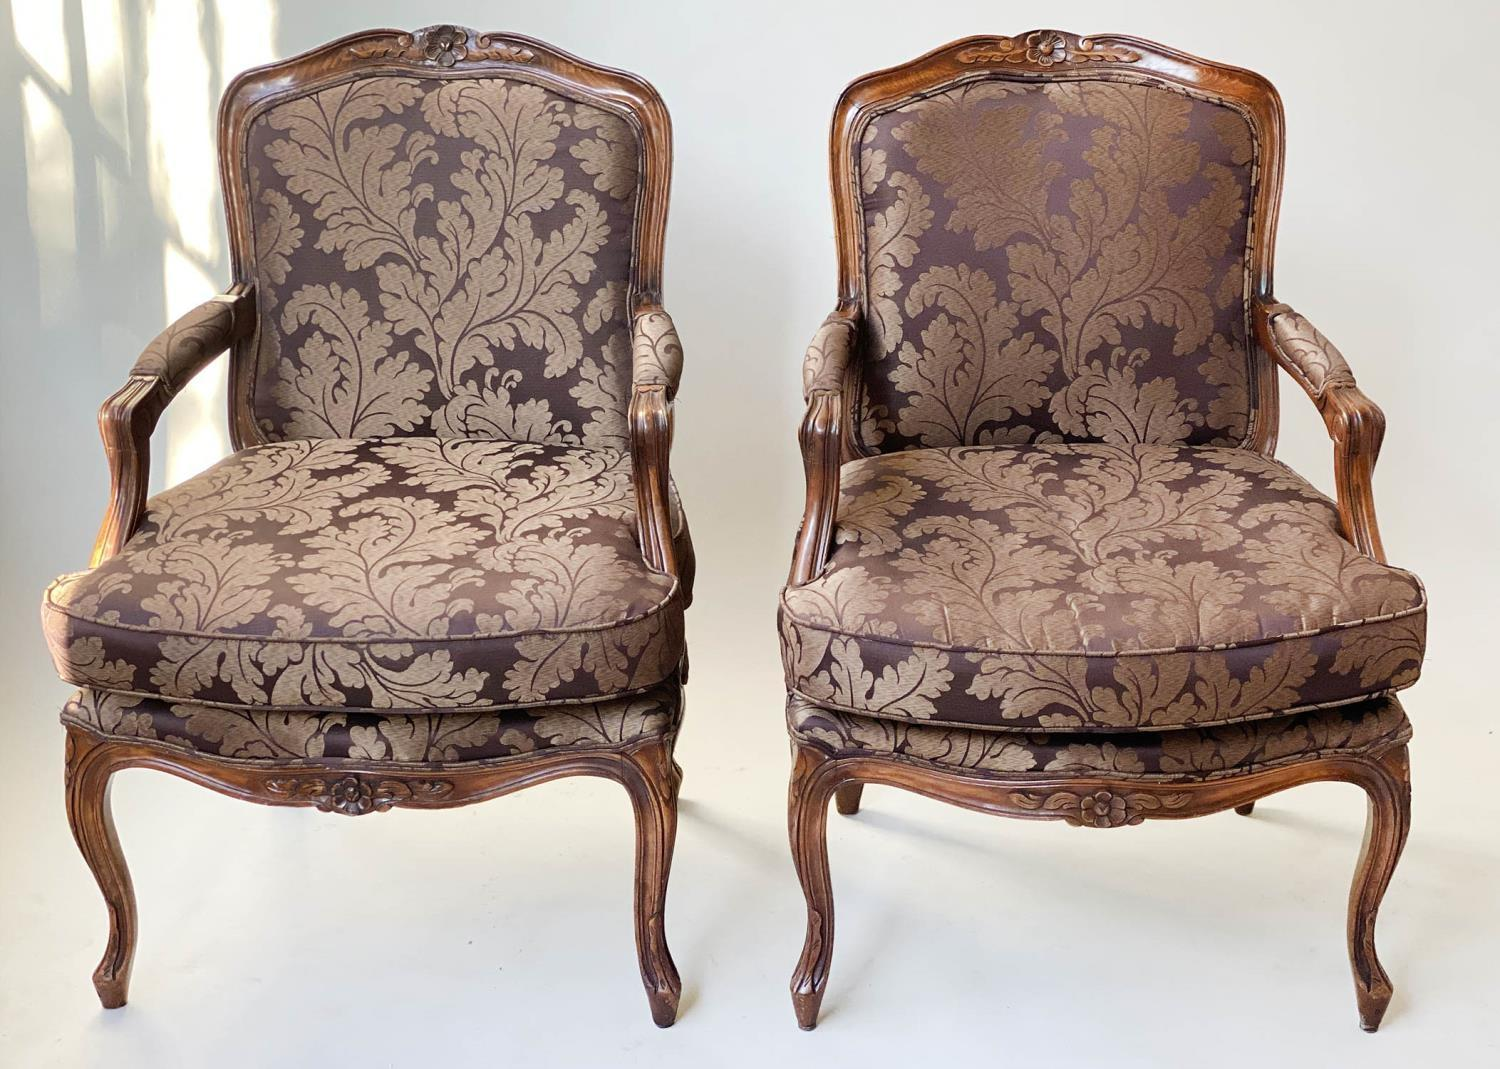 FAUTEUILS, a pair, French Louis XV style, stained walnut, with two tone brown leaf silk